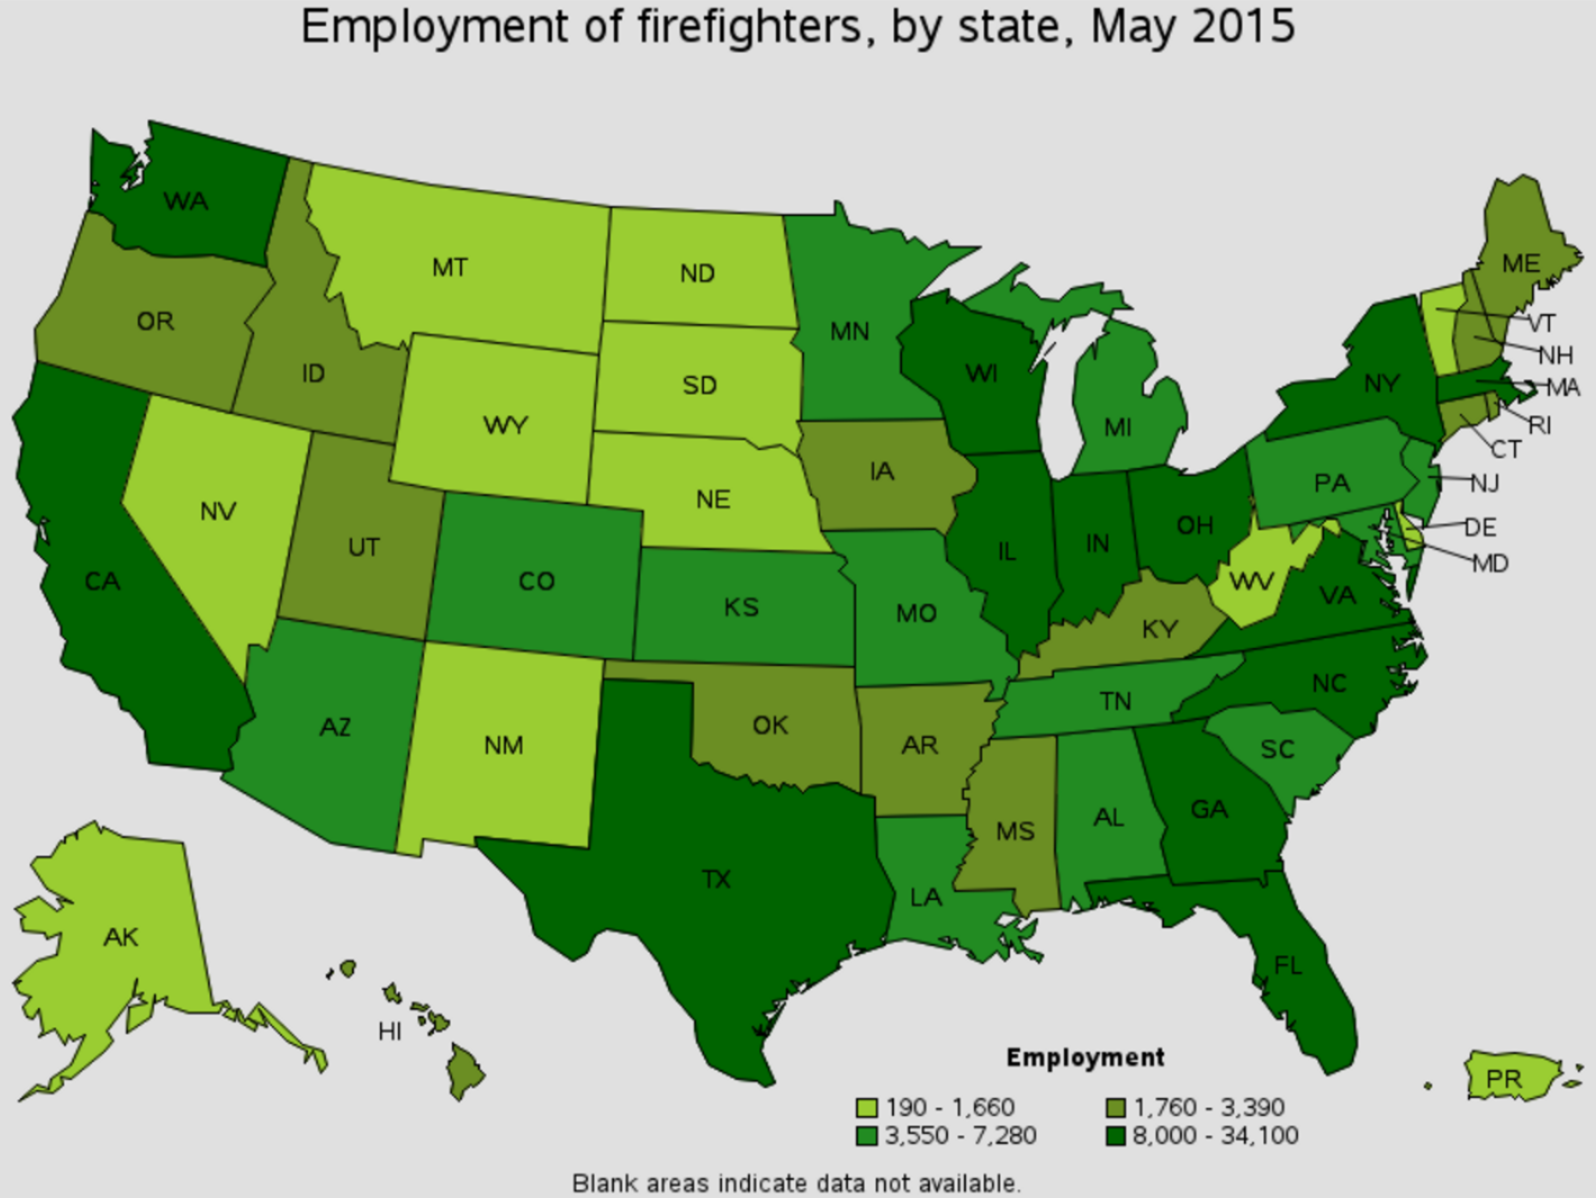 firefighter job outlook by state Williamsport Maryland